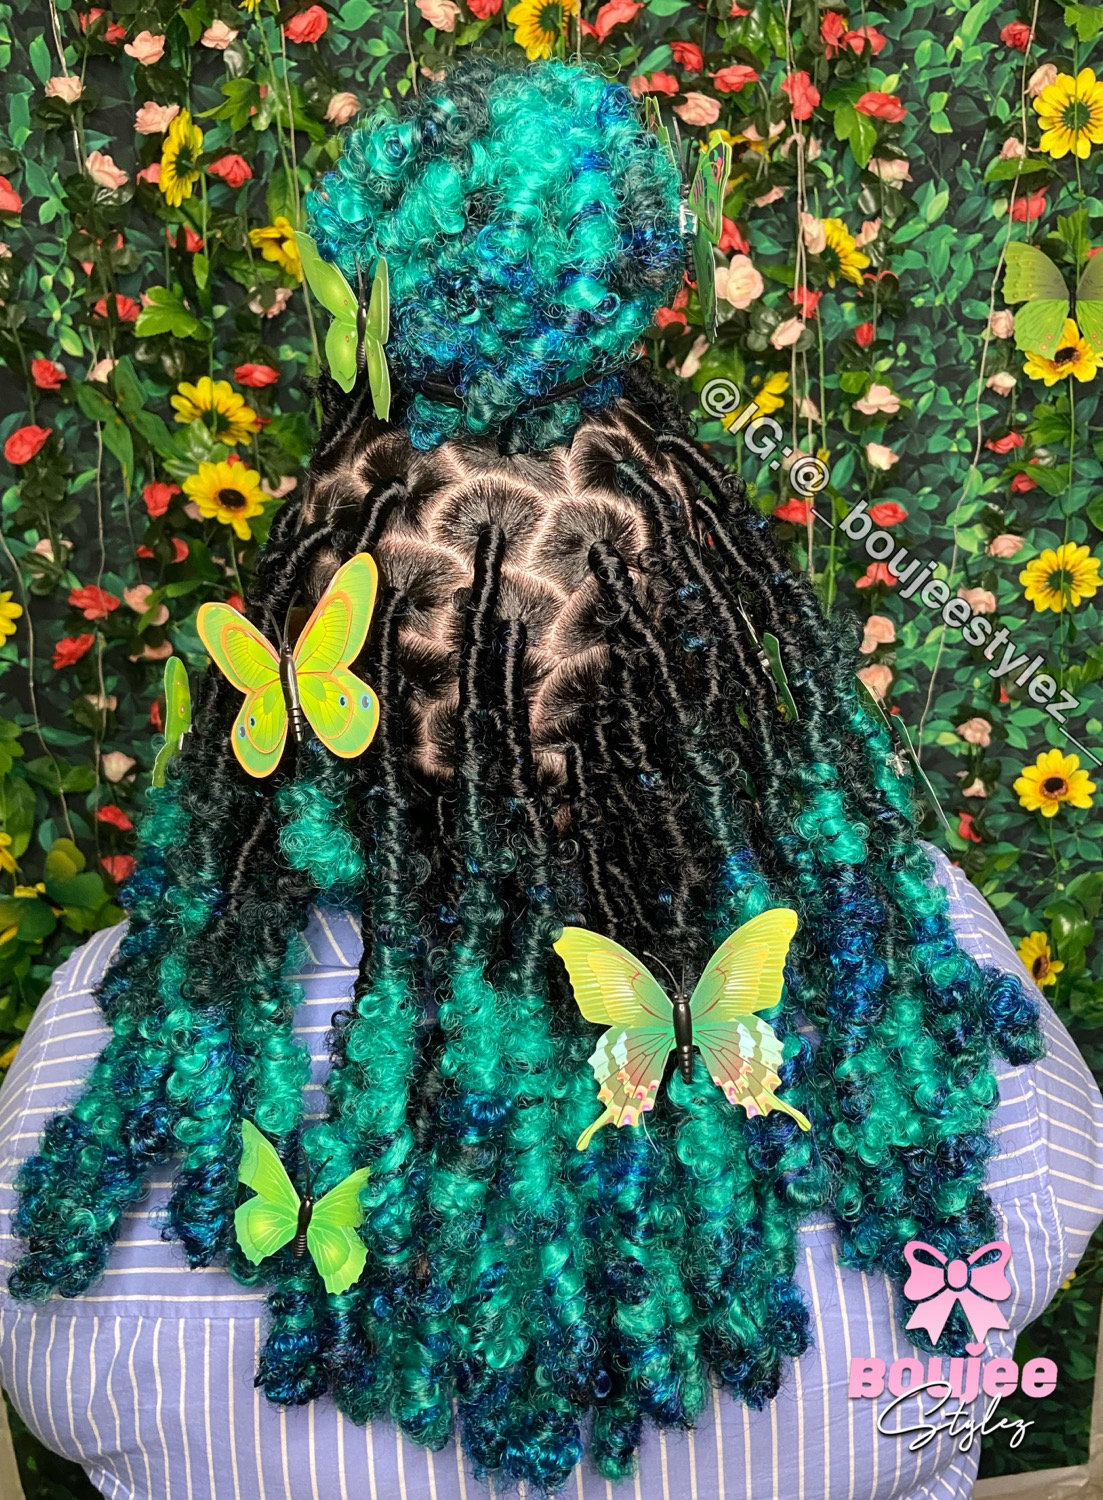 Med Butterfly locs hair included